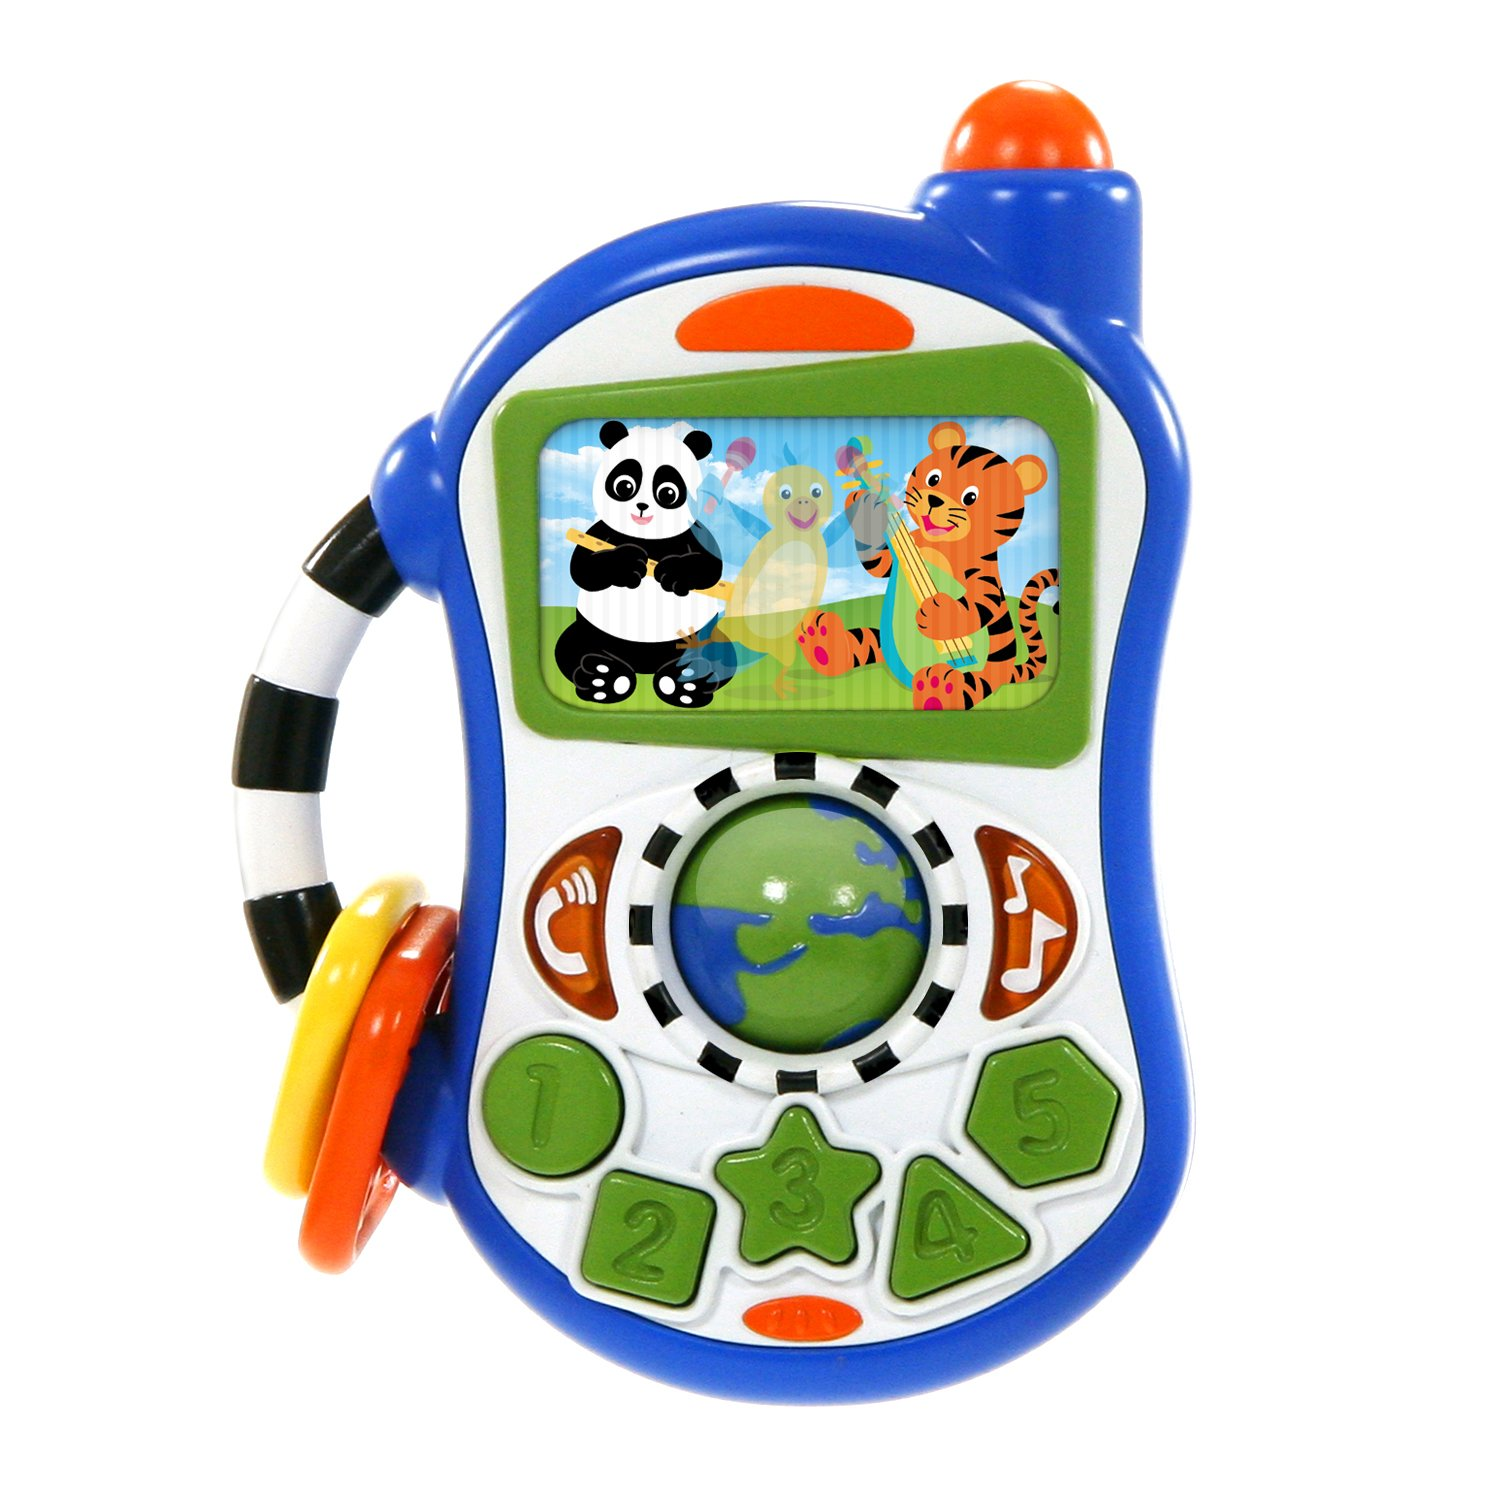 Amazon Baby Einstein Lights et Melo s Discovery Phone